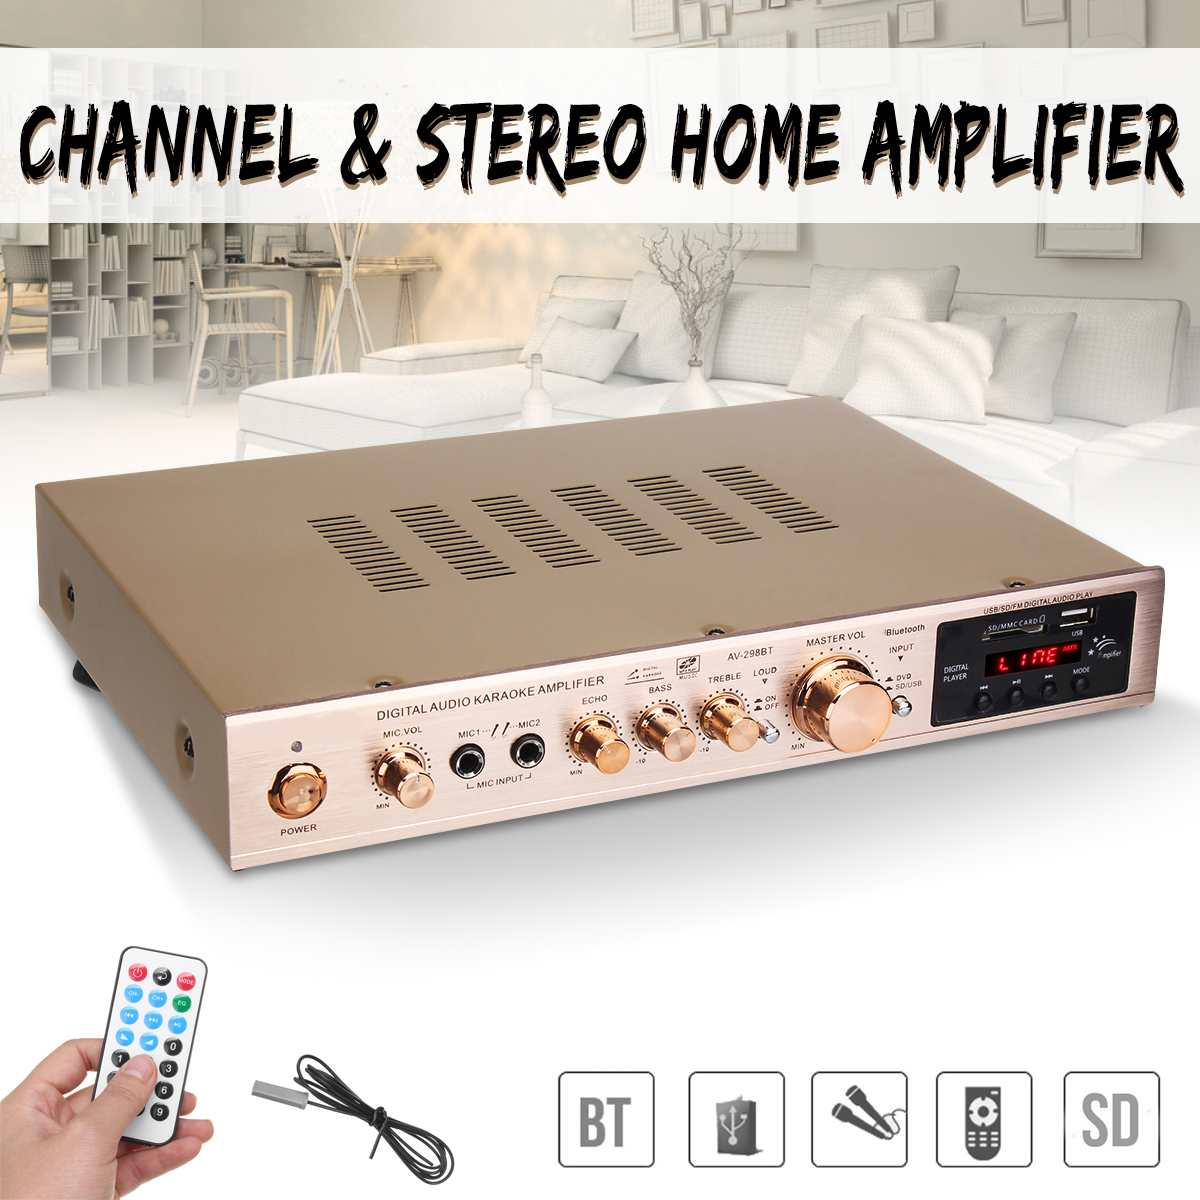 2000W 5 Channel Home <font><b>Amplifier</b></font> Audio Digital Auto Car AV <font><b>HiFi</b></font> Class Power <font><b>Amplifiers</b></font> Stereo Sound FM Radio Player Aluminum Alloy image